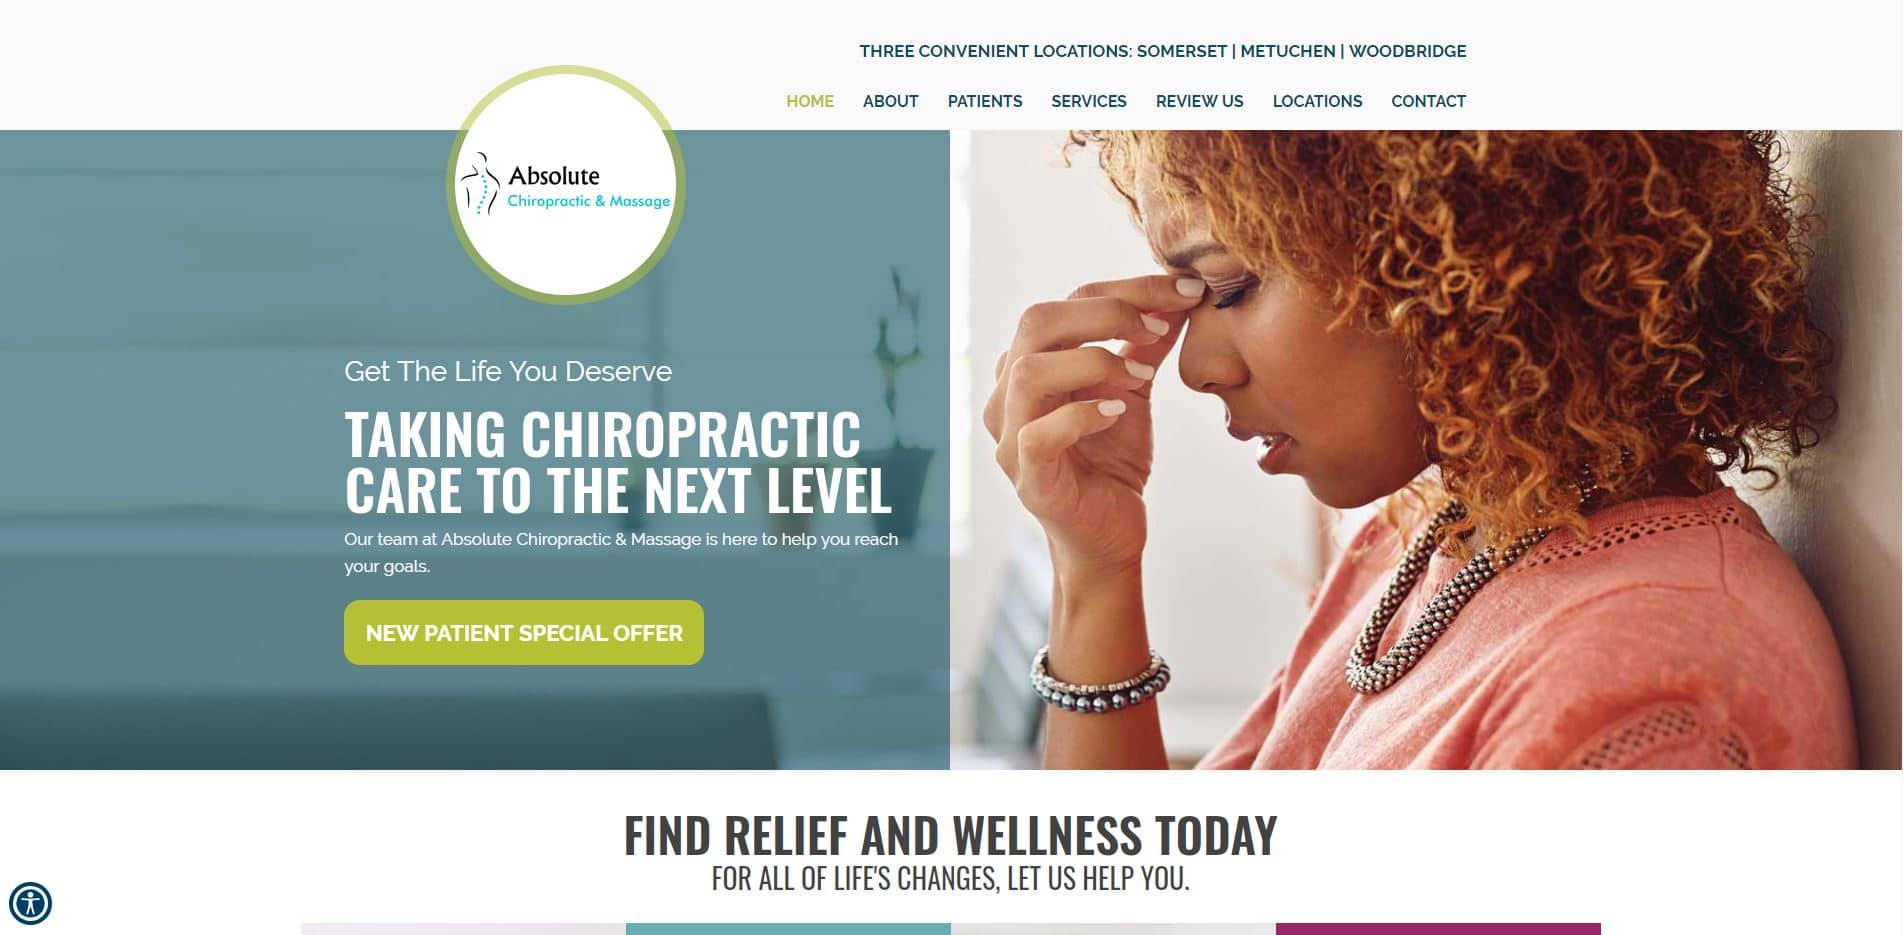 Chiropractor in Woodbridge